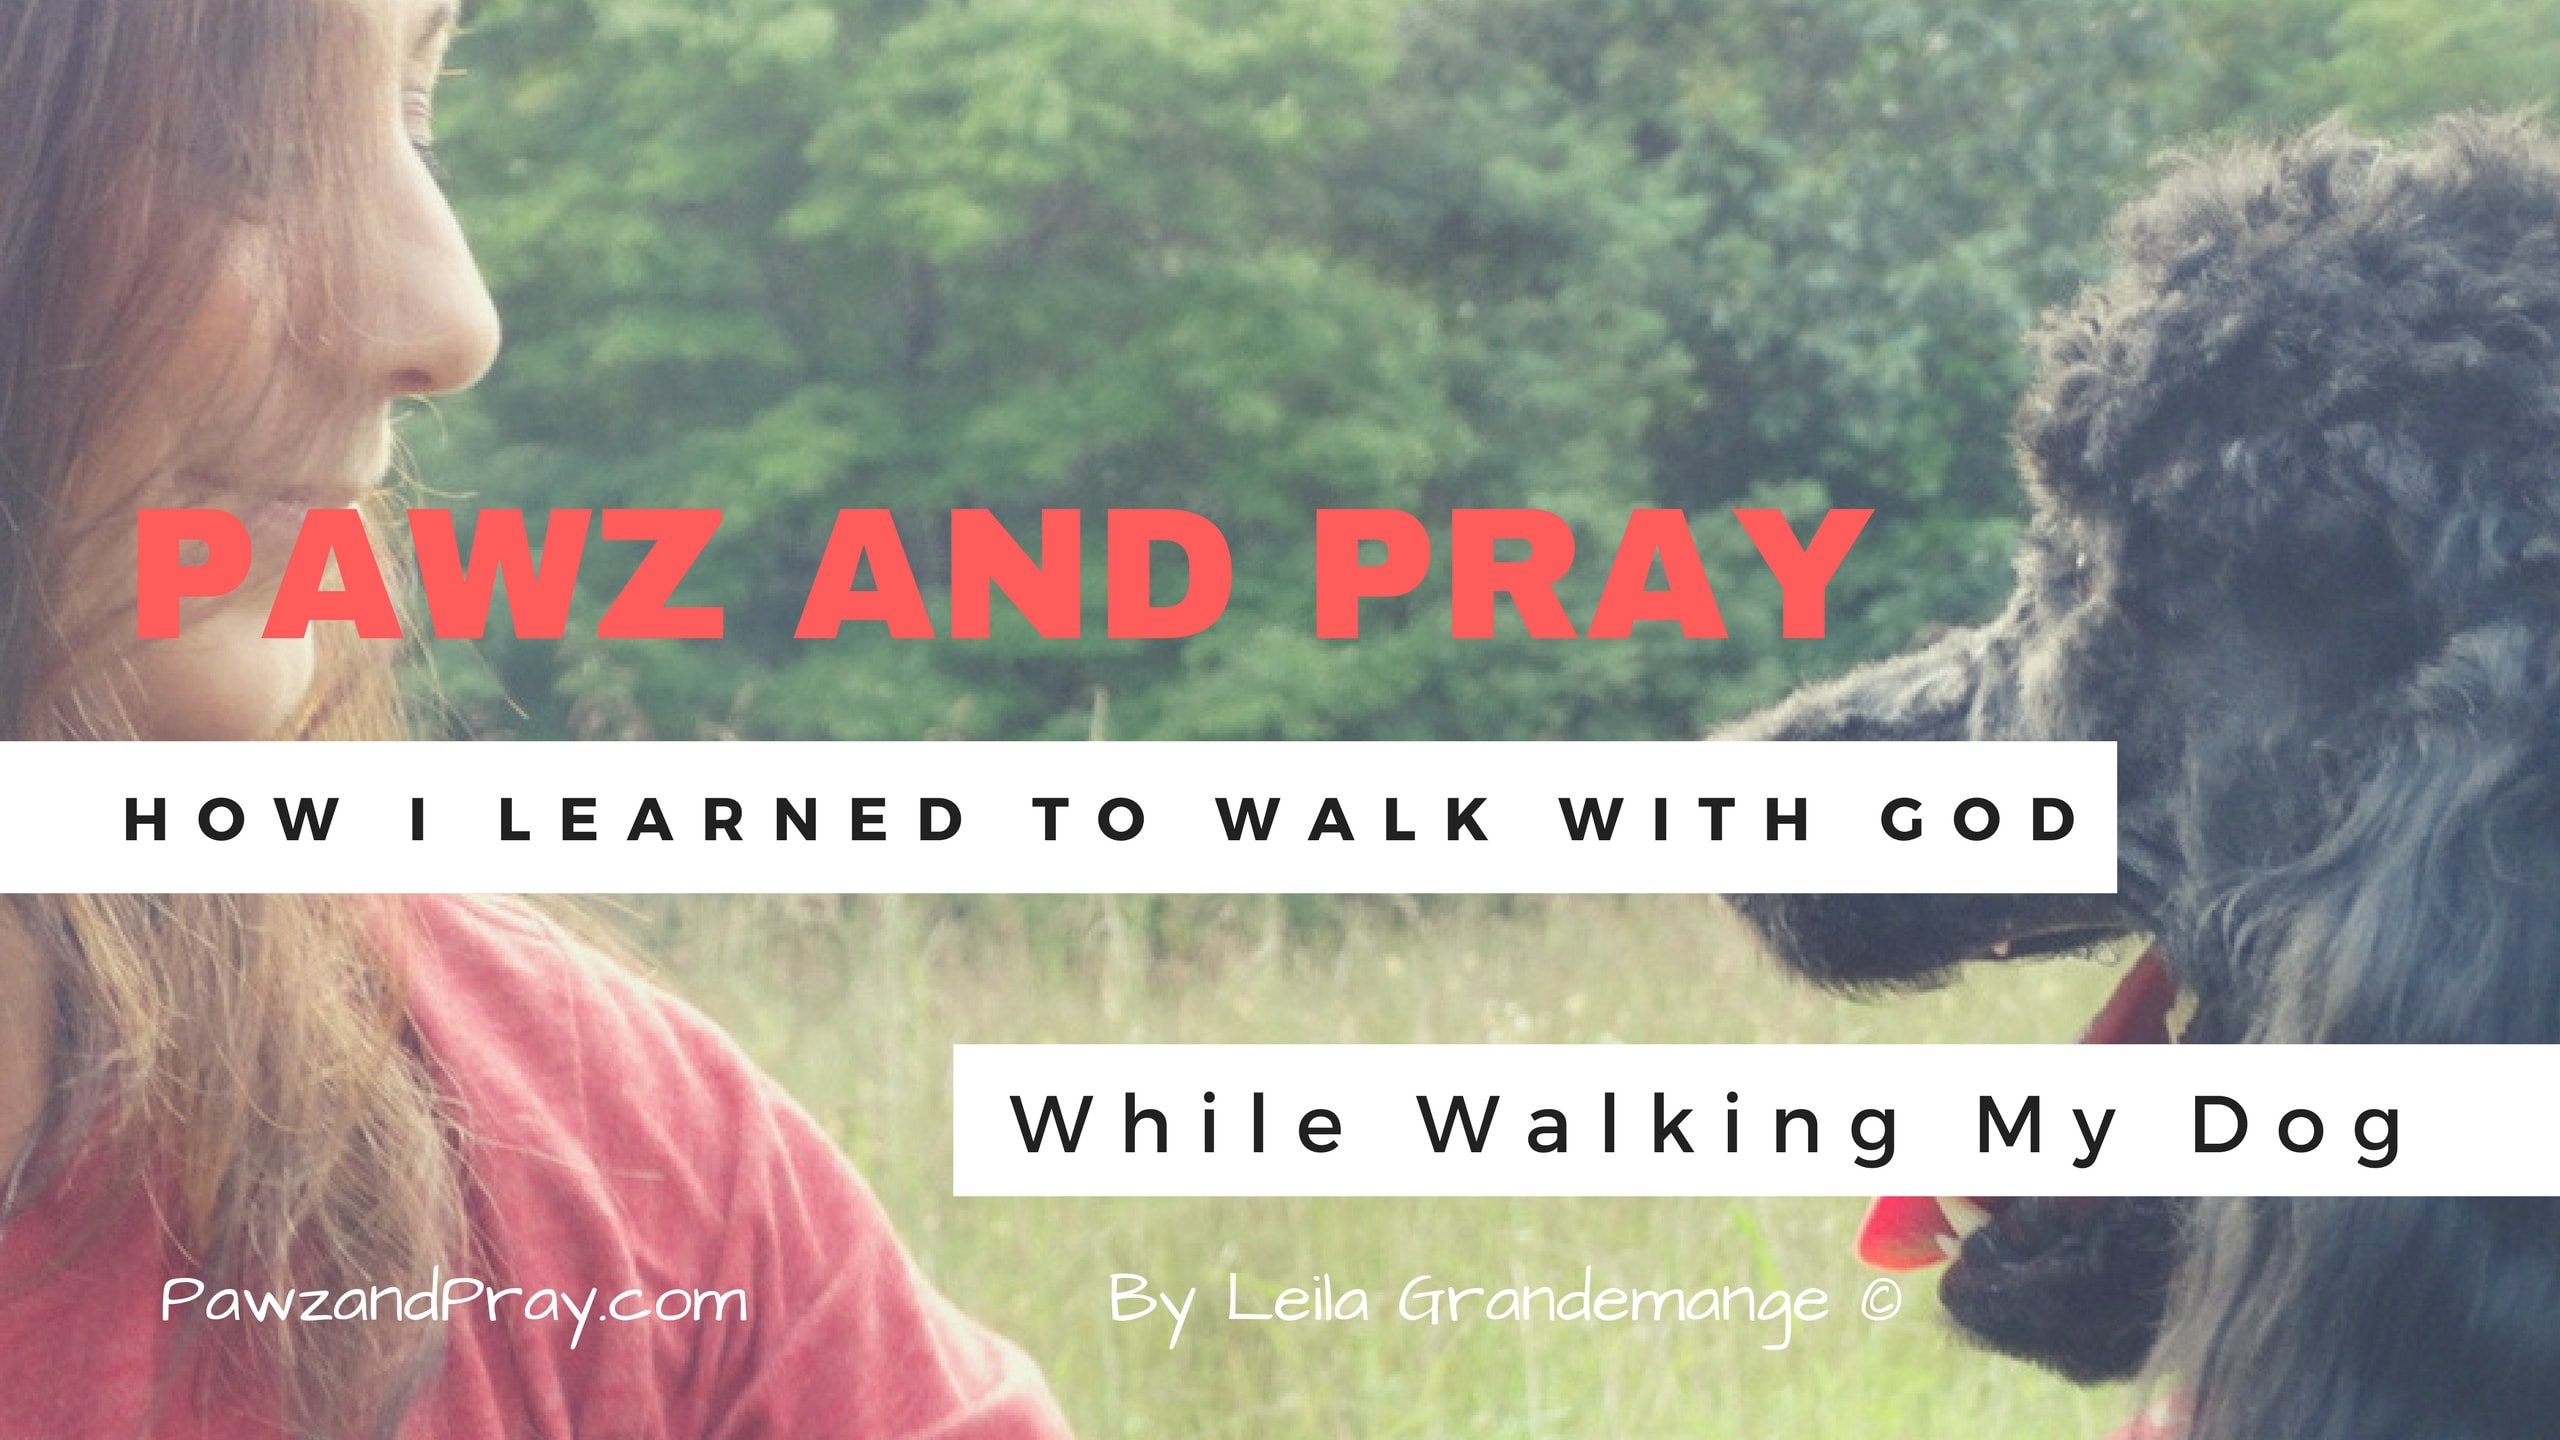 3 Amazing Insights about God Learned While Walking My Dog [Video]